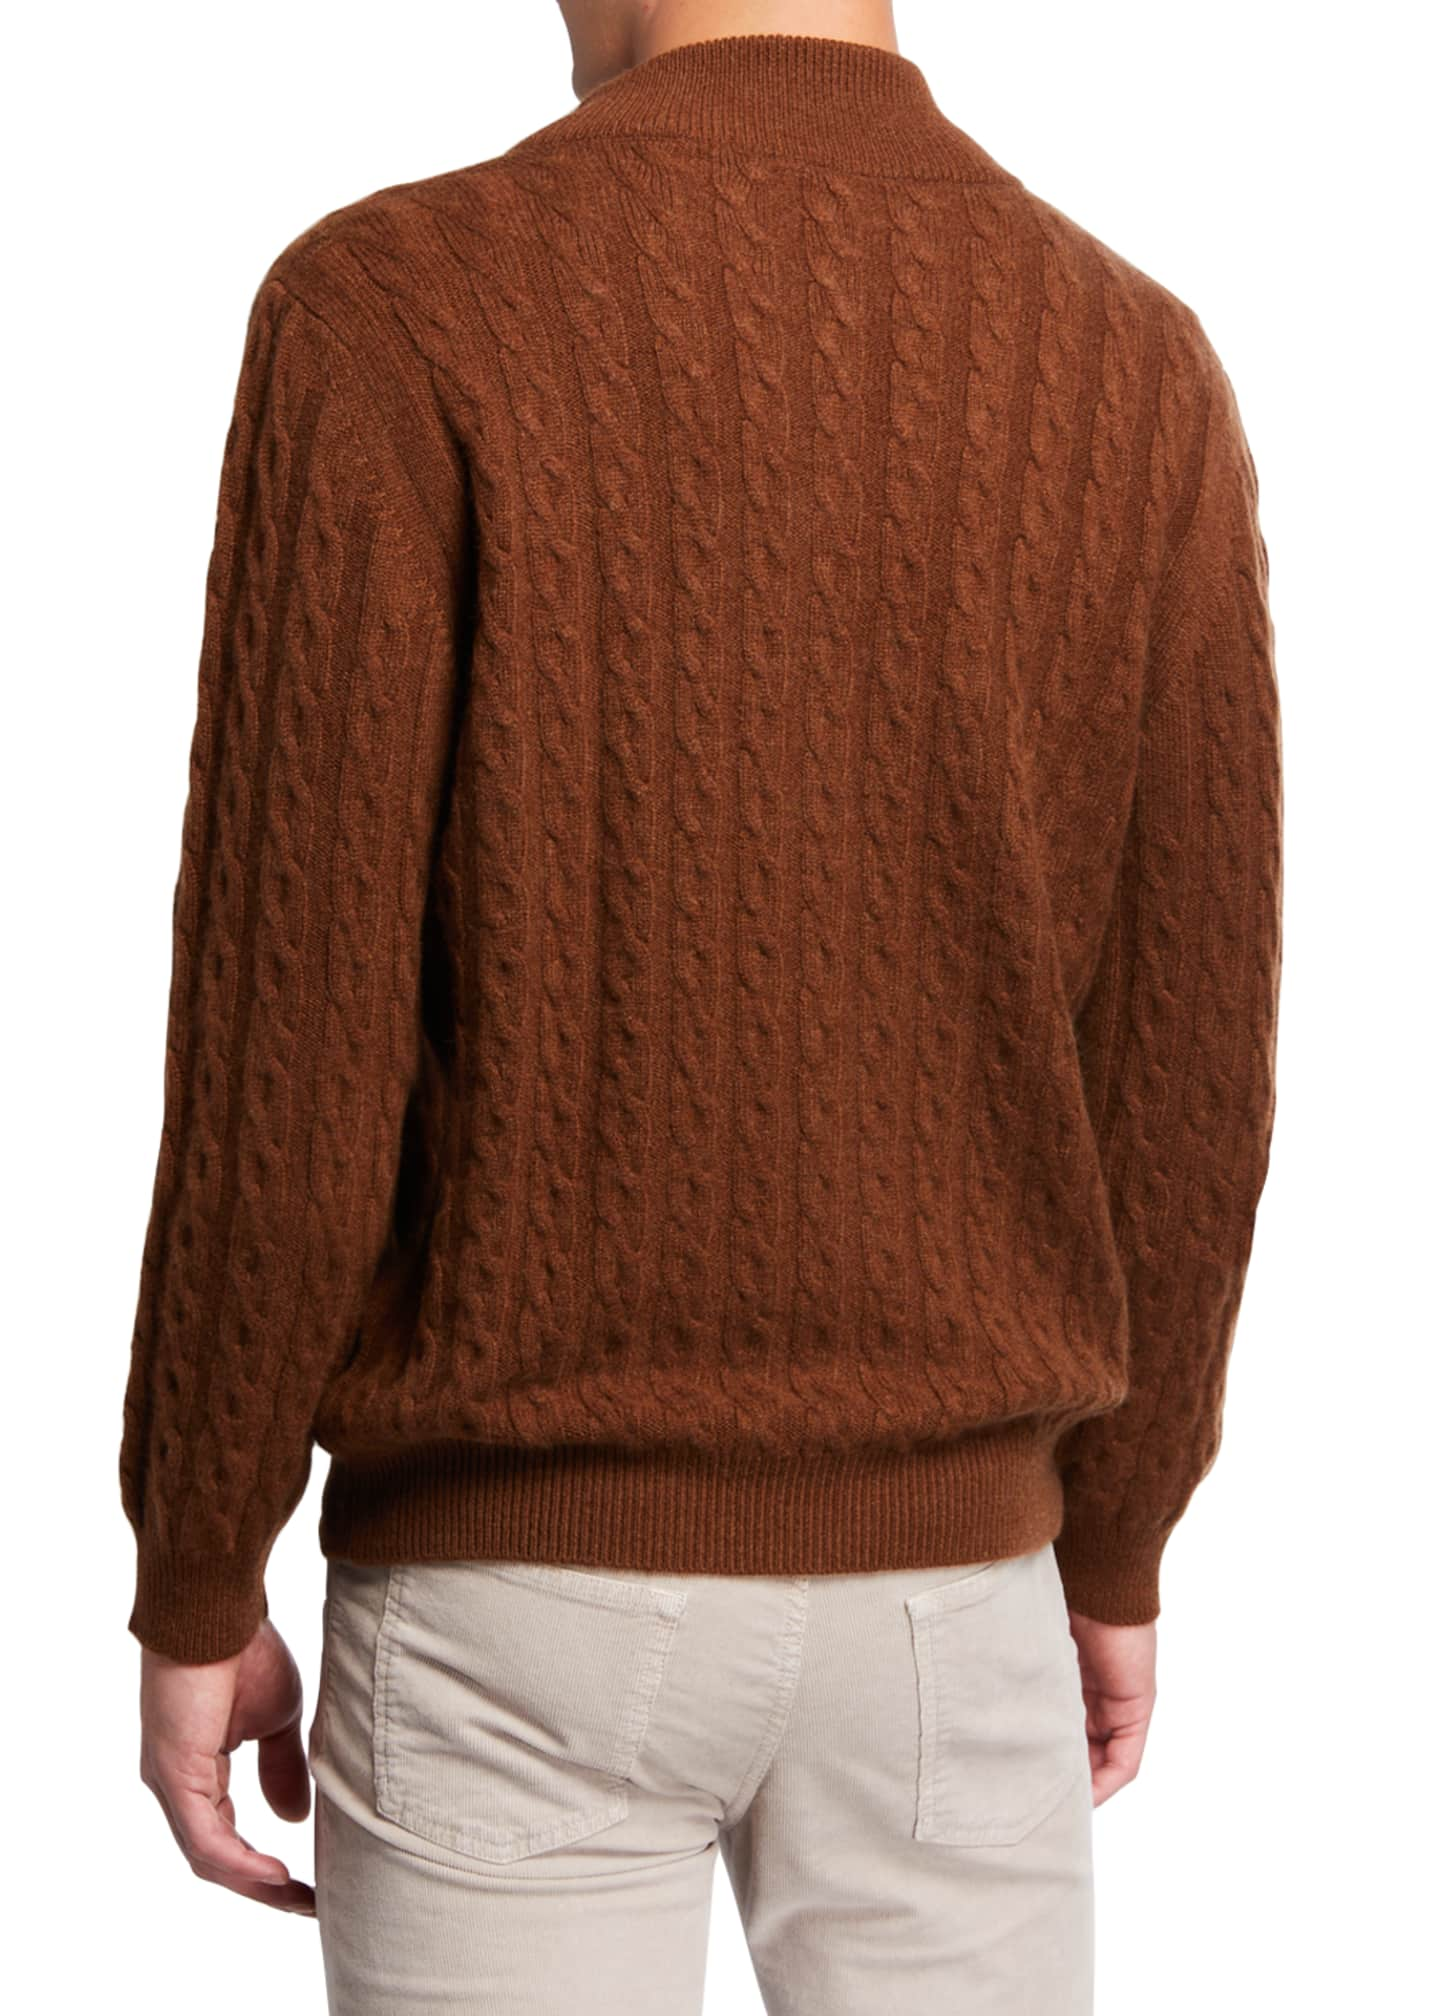 Image 3 of 3: Men's Cable-Knit Two-Way Zip Cardigan Sweater